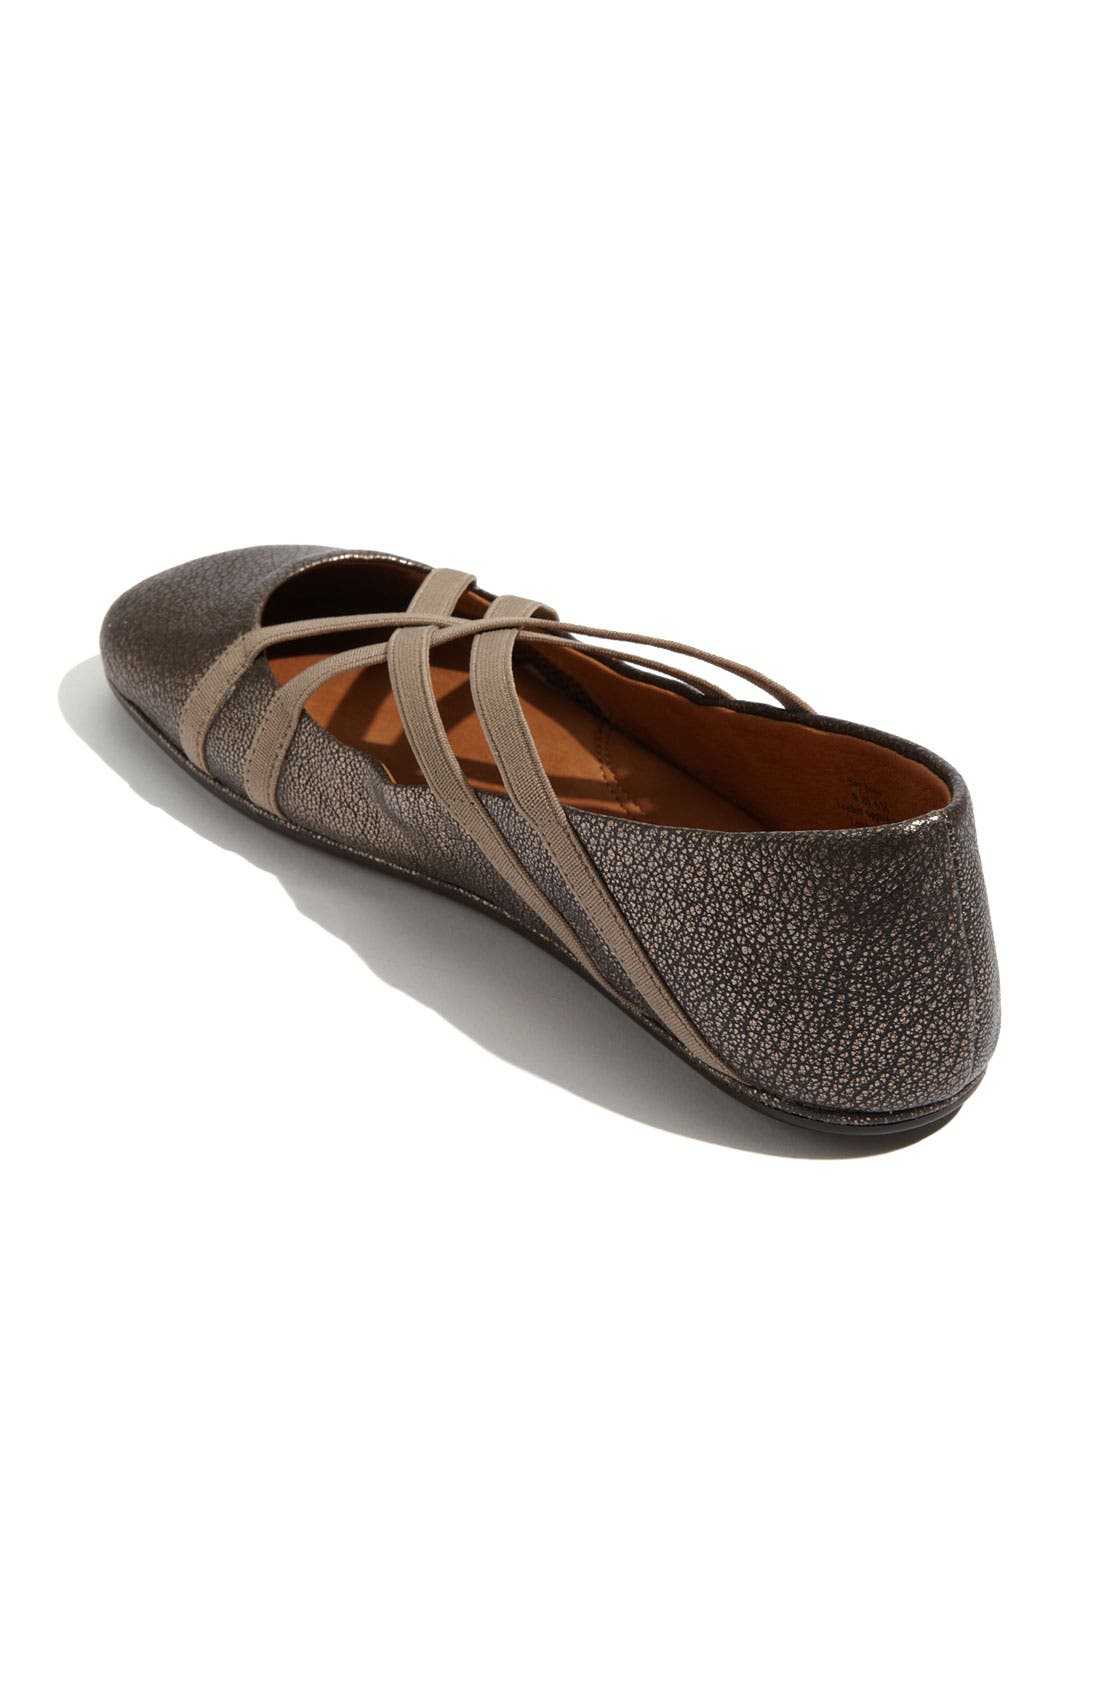 GENTLE SOULS BY KENNETH COLE, 'Bay Braid' Flat, Alternate thumbnail 2, color, ANTIQUE PEWTER